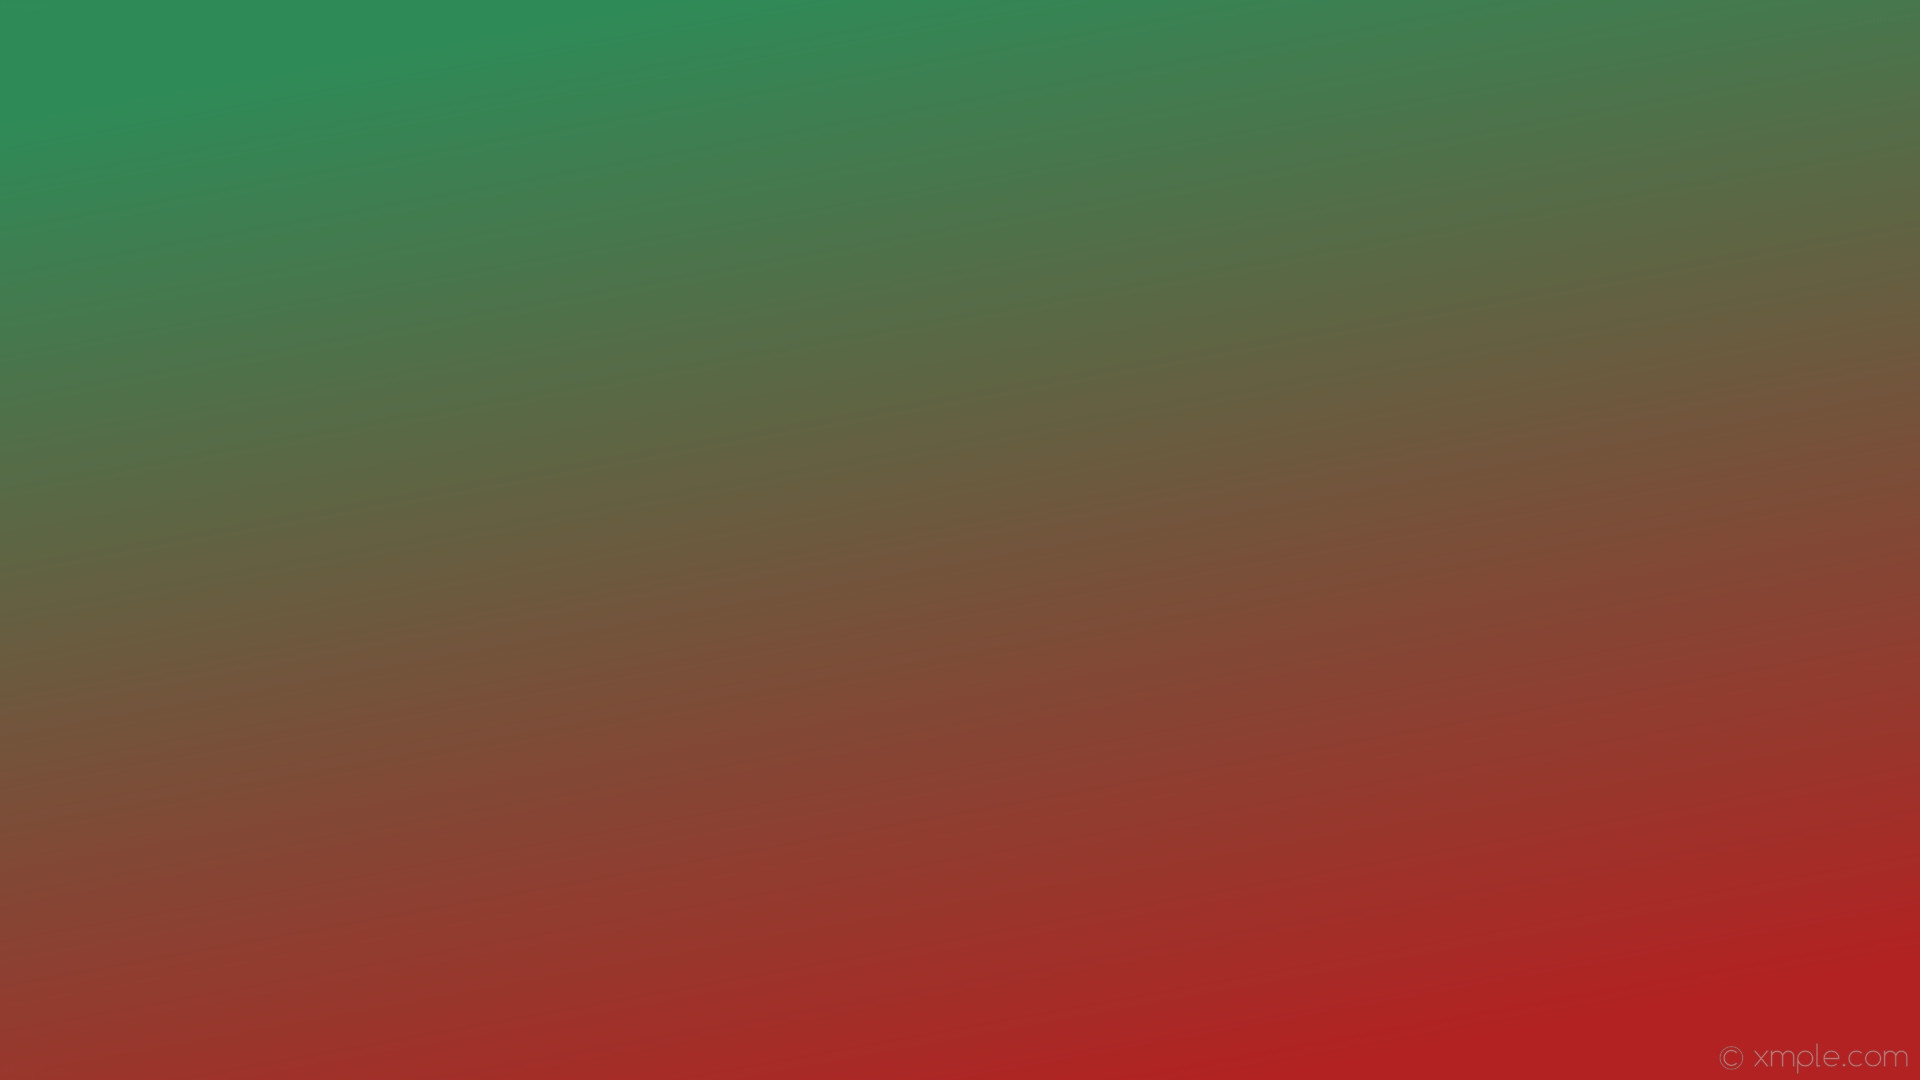 Red And Green Wallpaper 74 Images